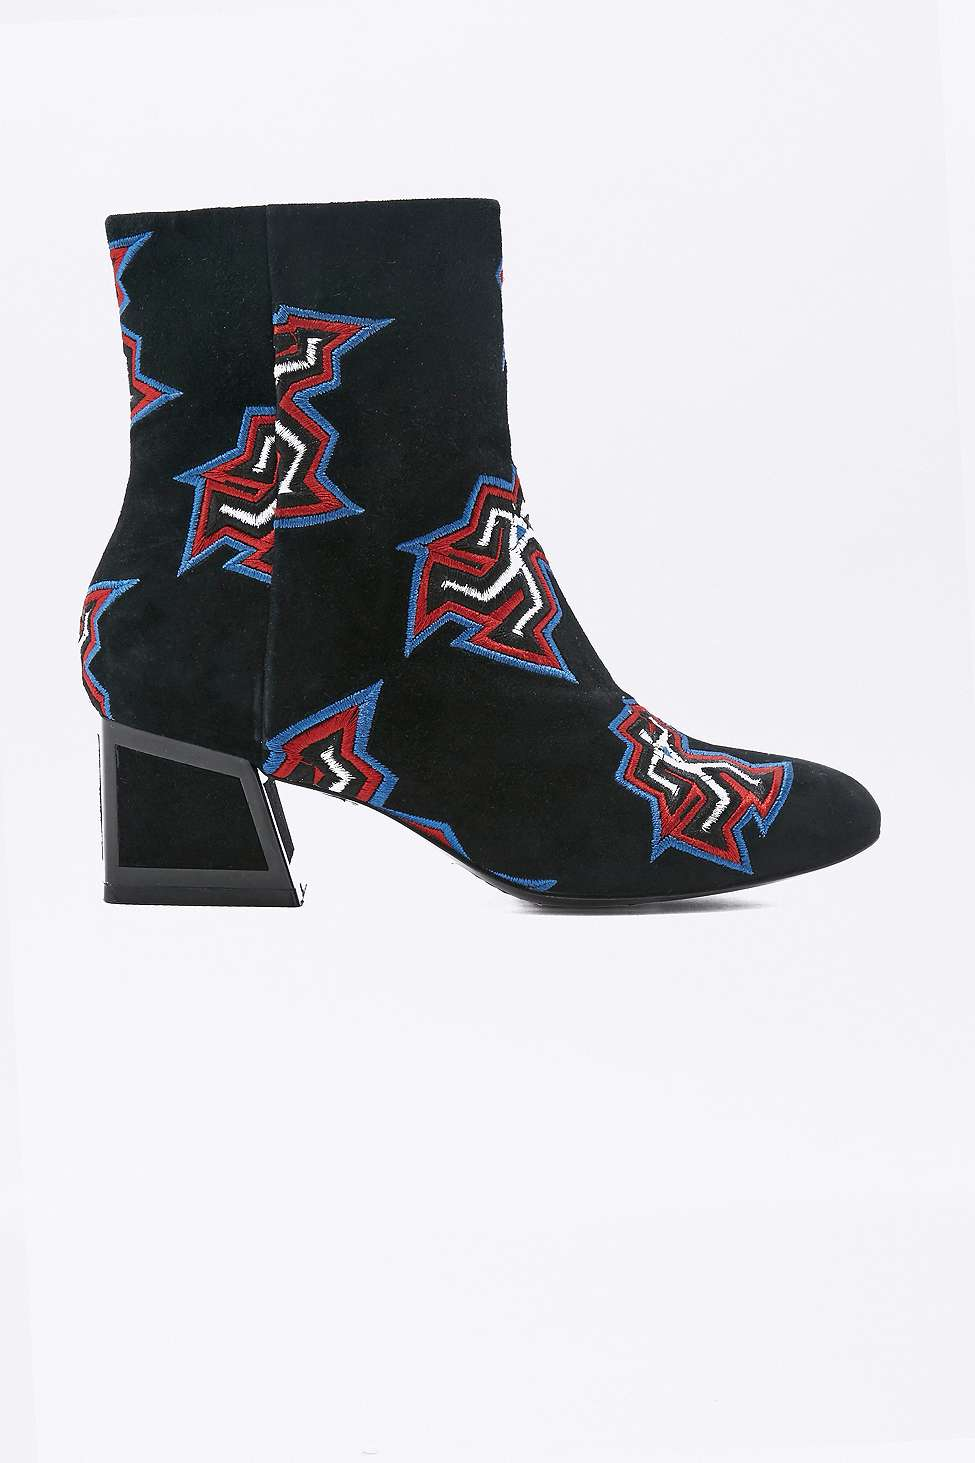 kat-maconie-boots-urban-outfitters-fun-print